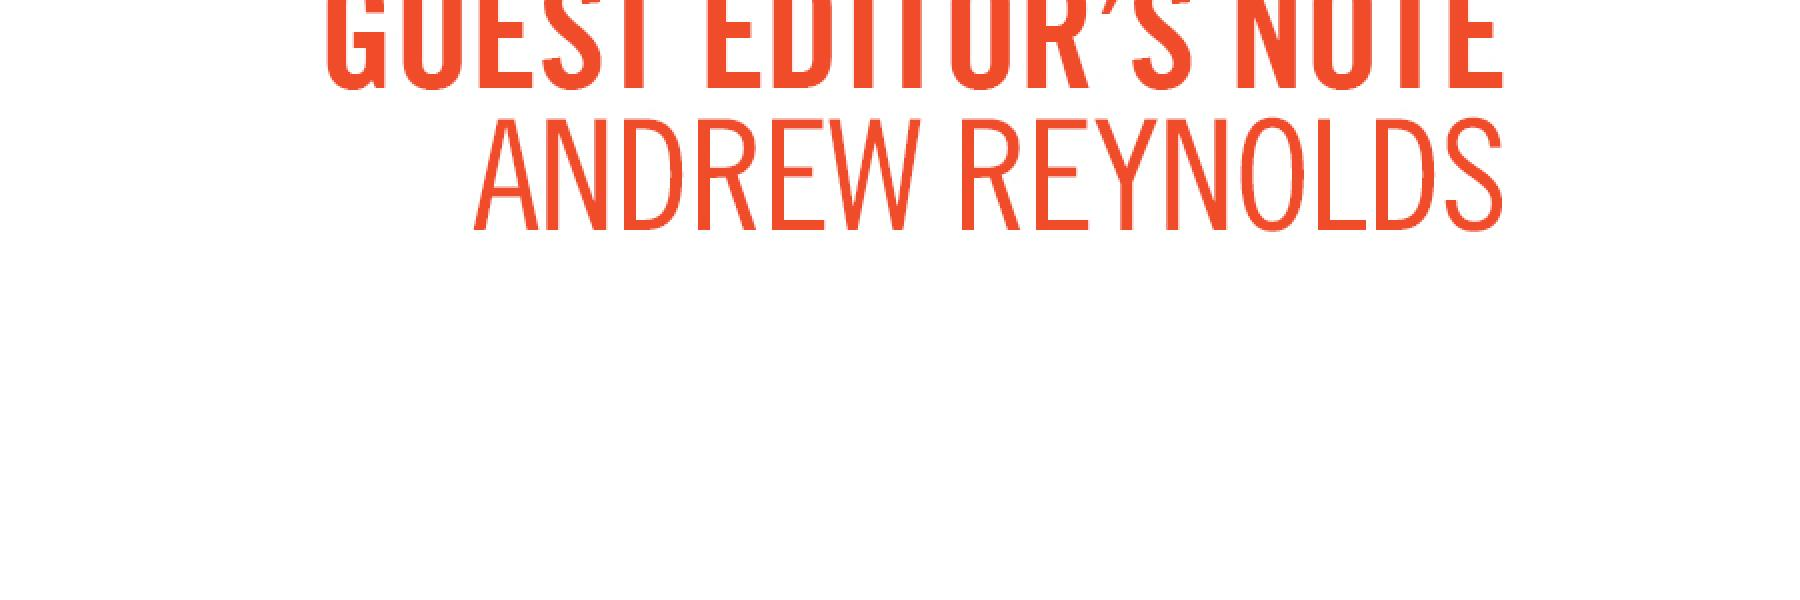 Positively Aware Guest Editors Note